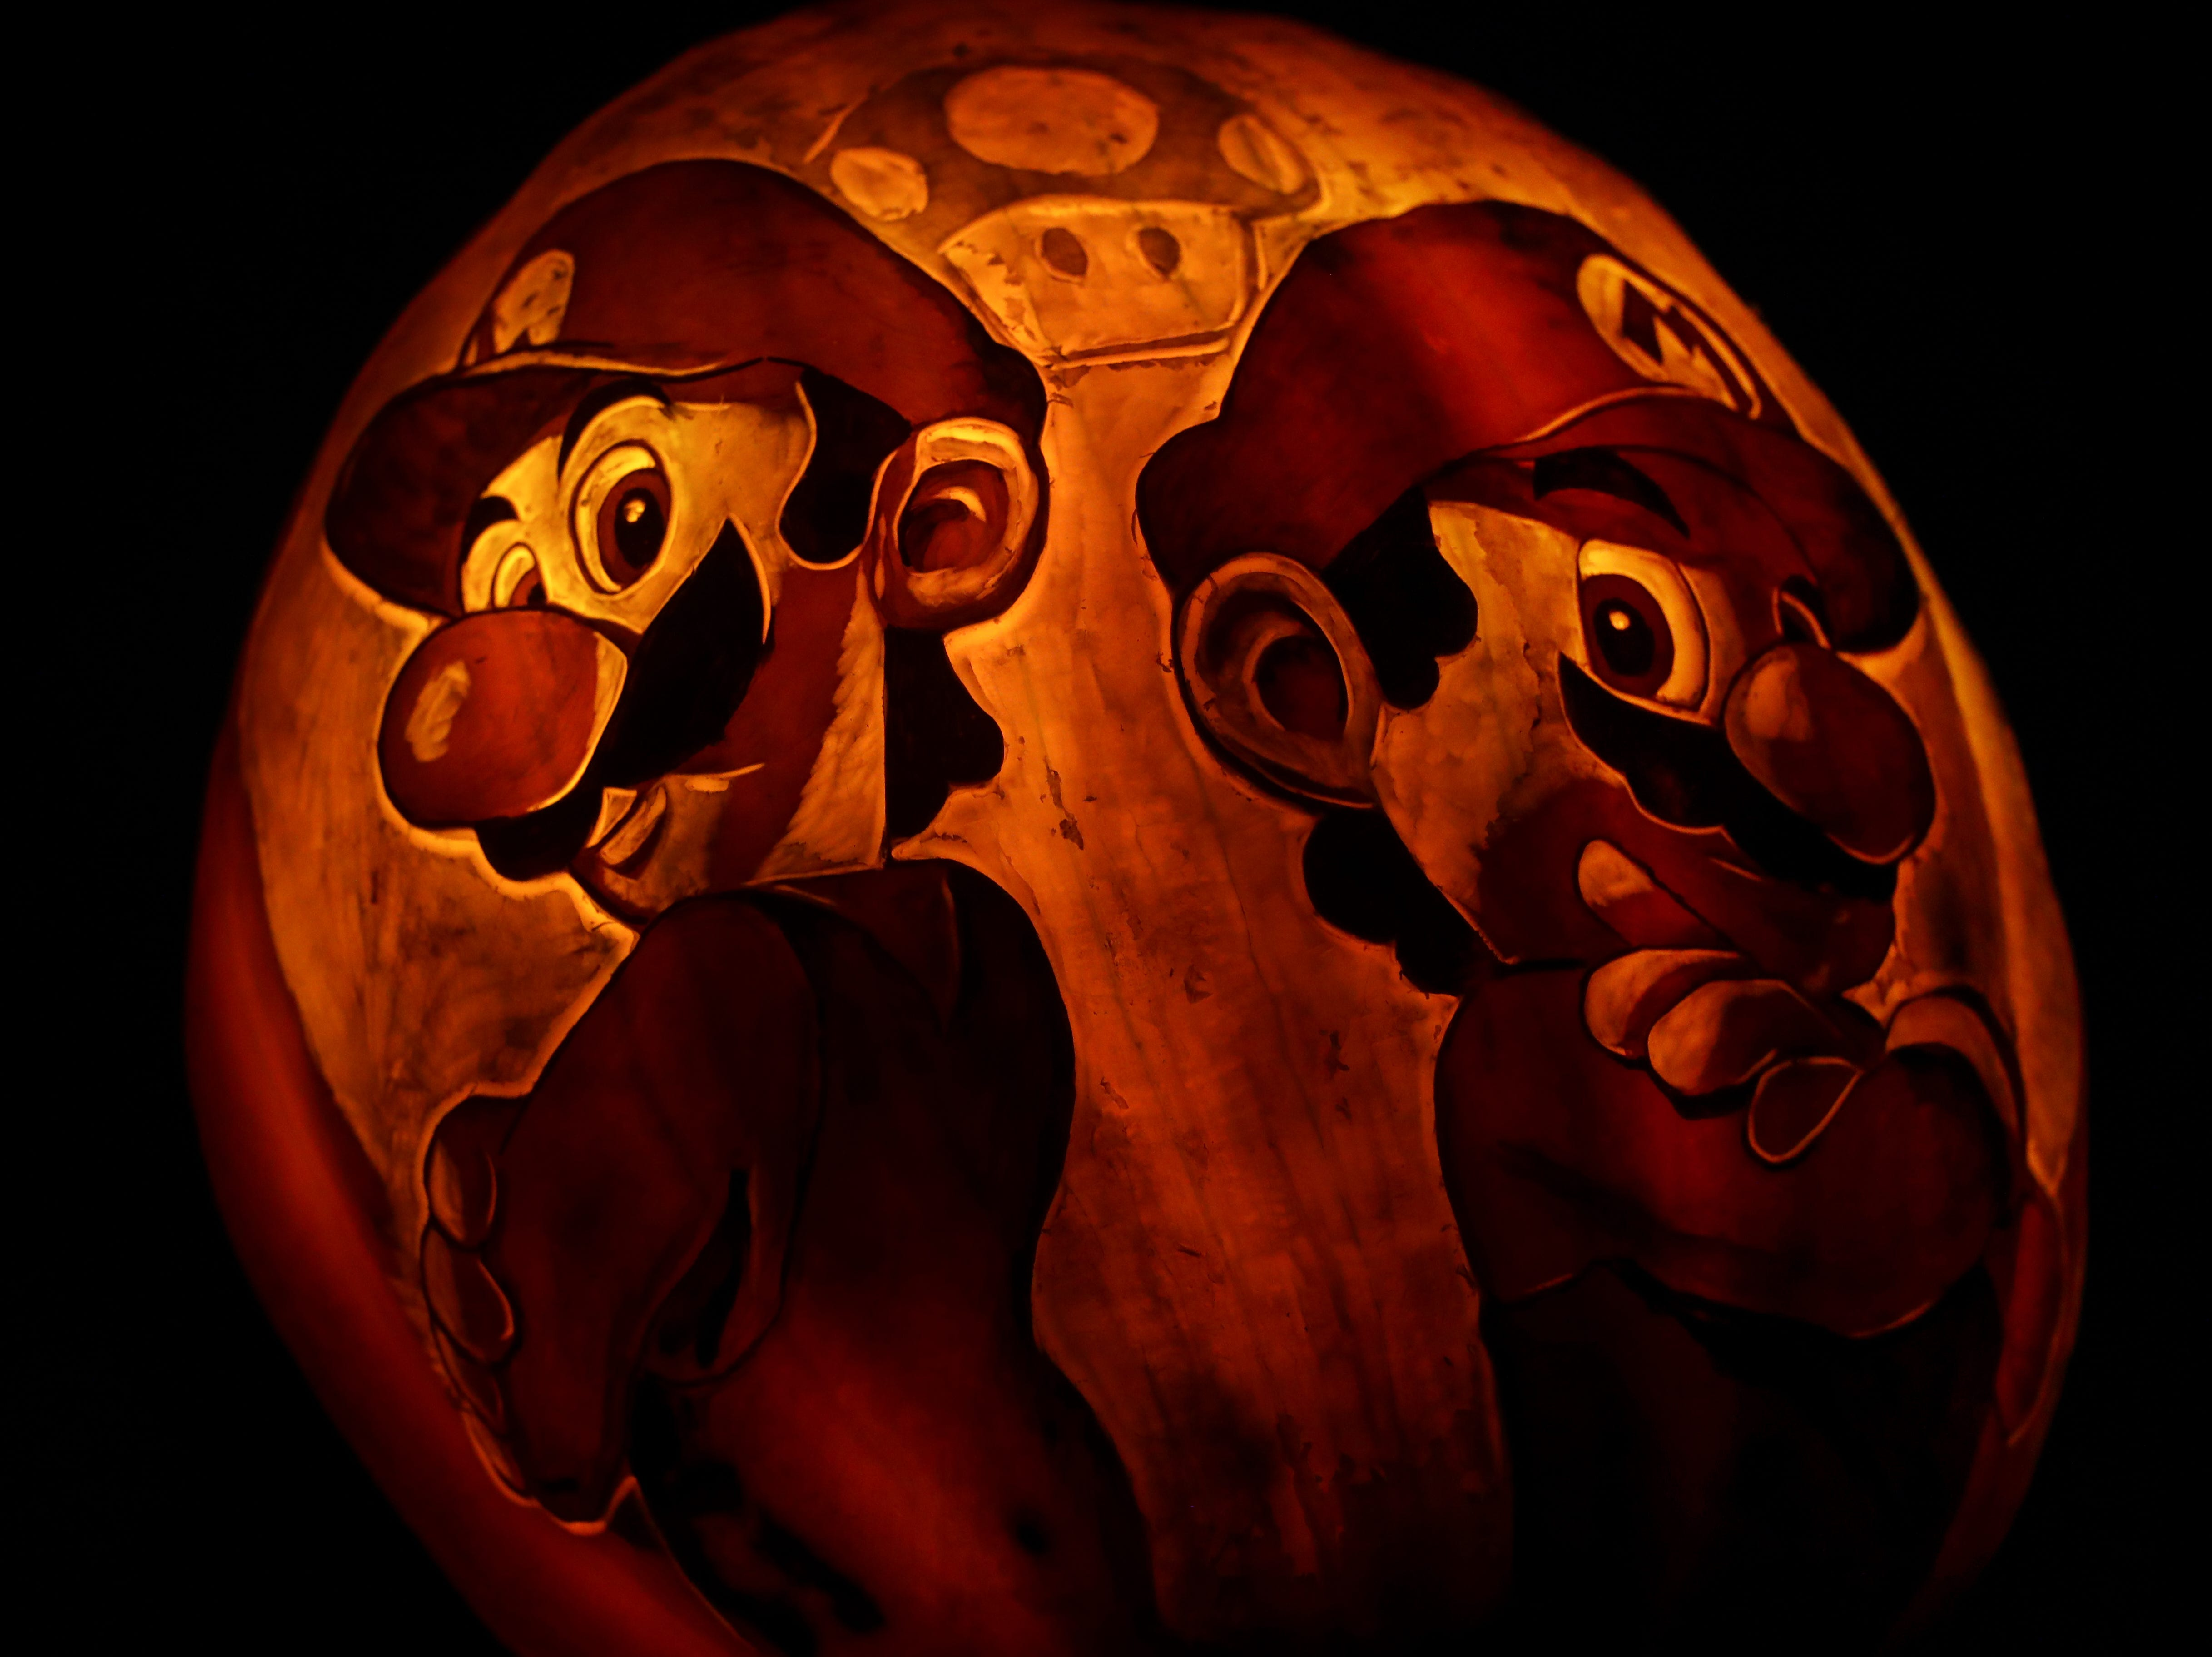 The Mario Brothers appear on a pumpkin at this year's Jack O' Lantern Spectacular. Oct. 9, 2018